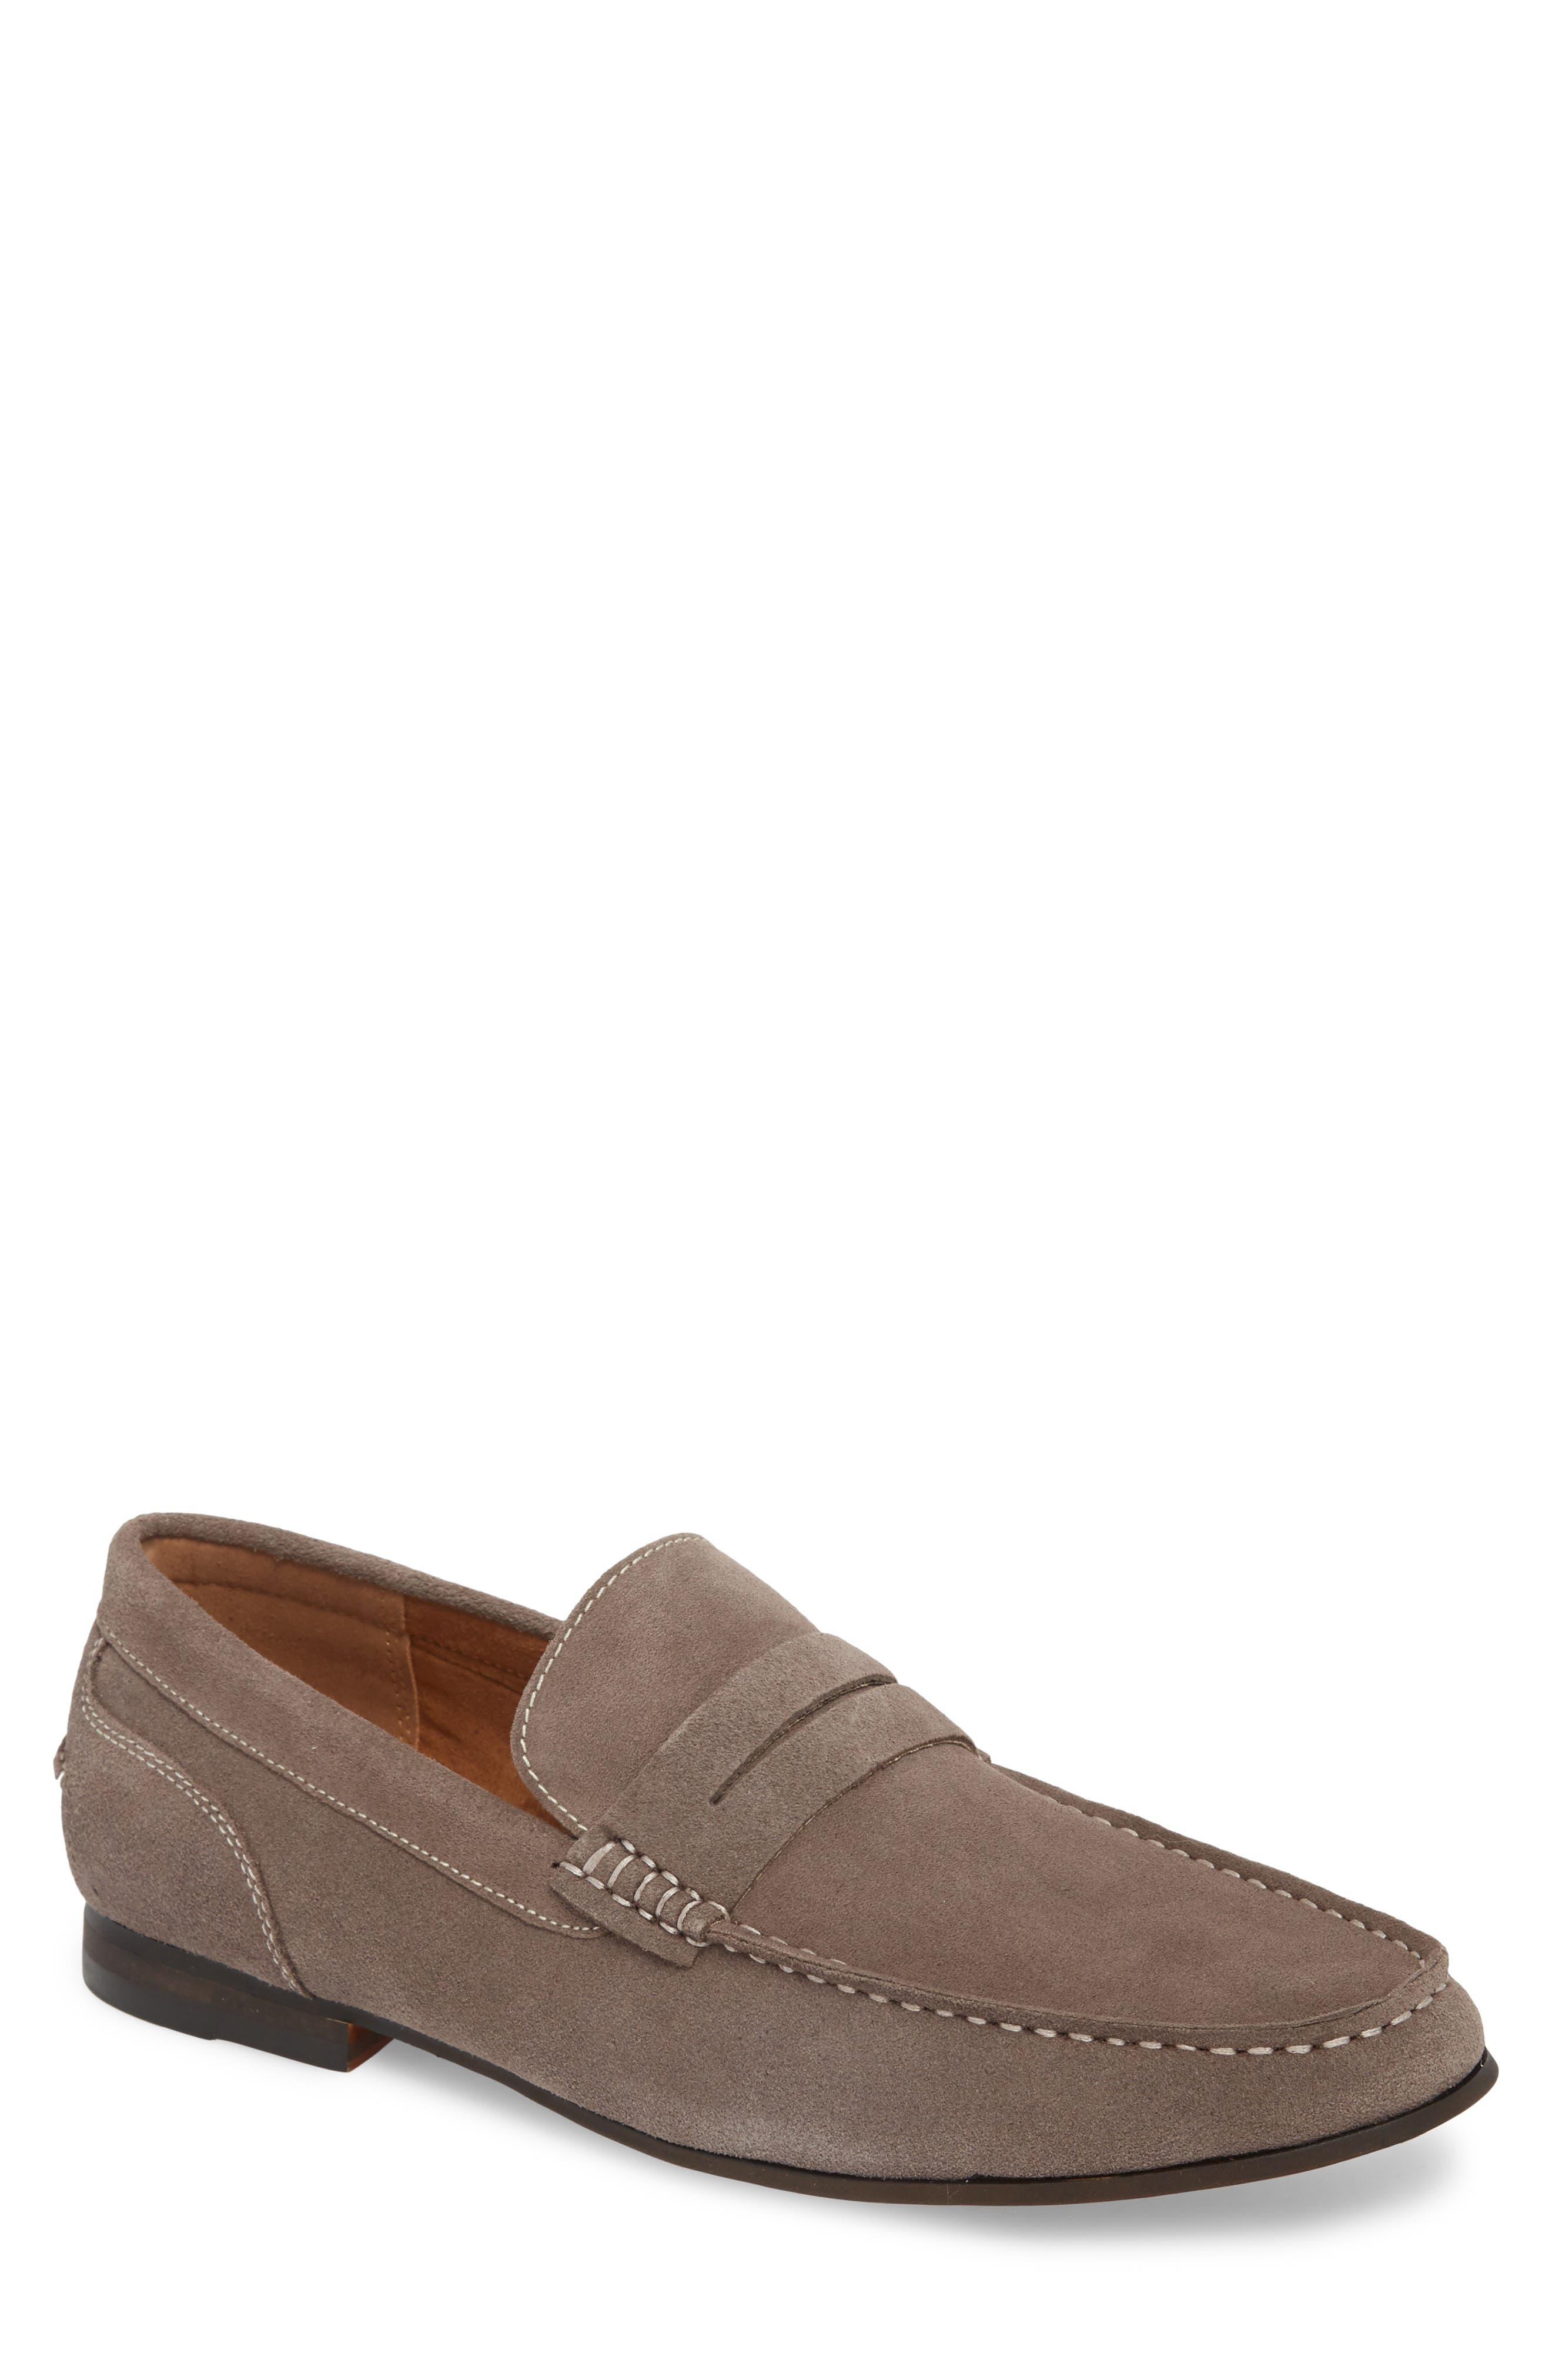 Crespo Penny Loafer,                             Main thumbnail 1, color,                             Grey